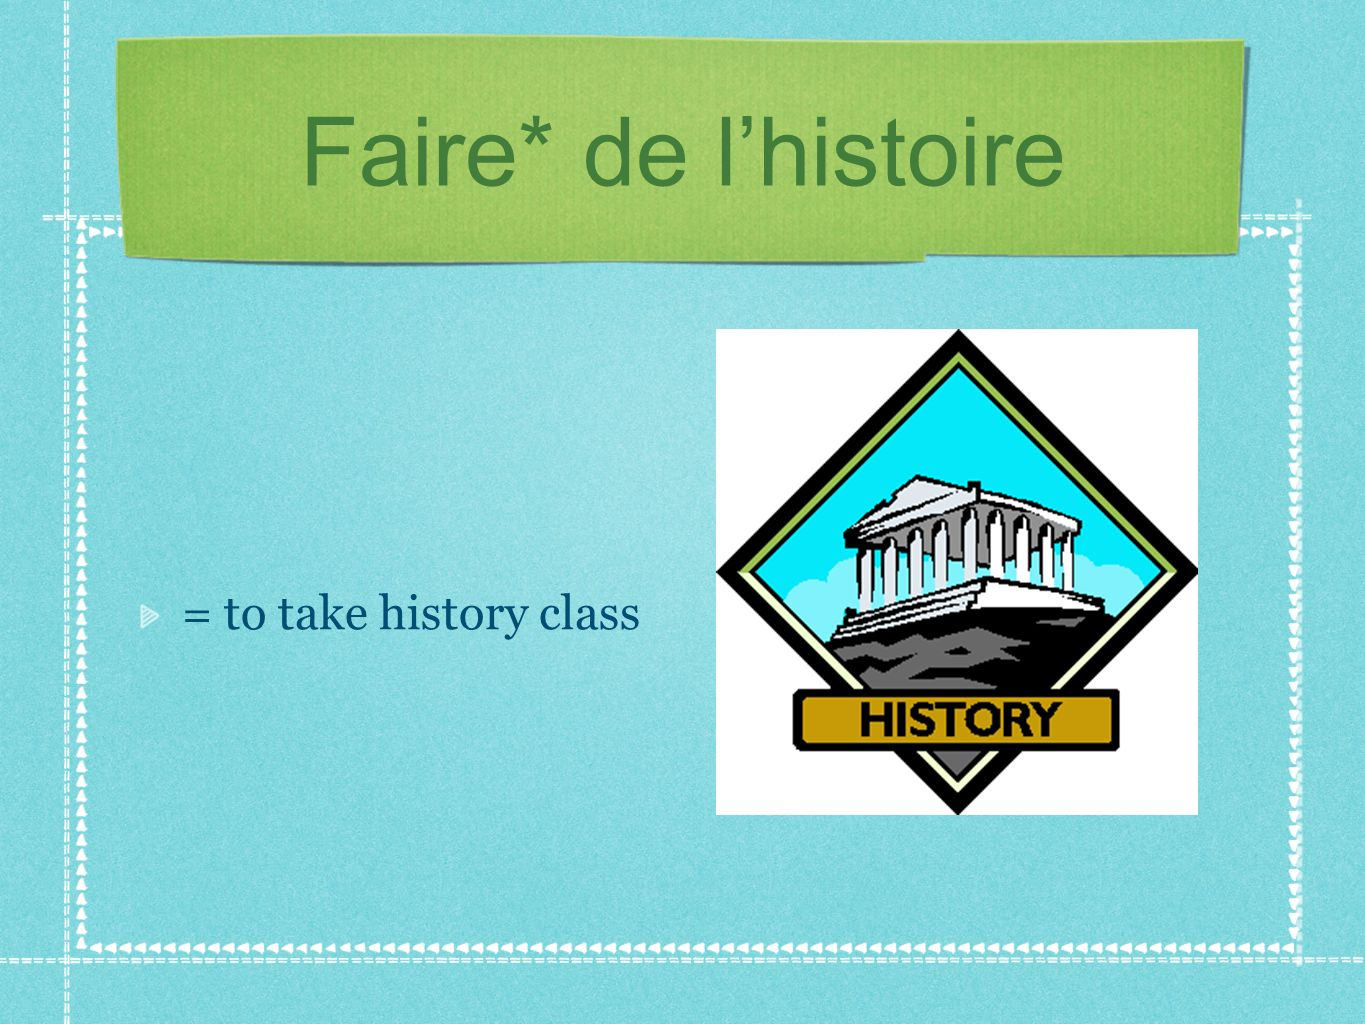 Faire* de lhistoire = to take history class